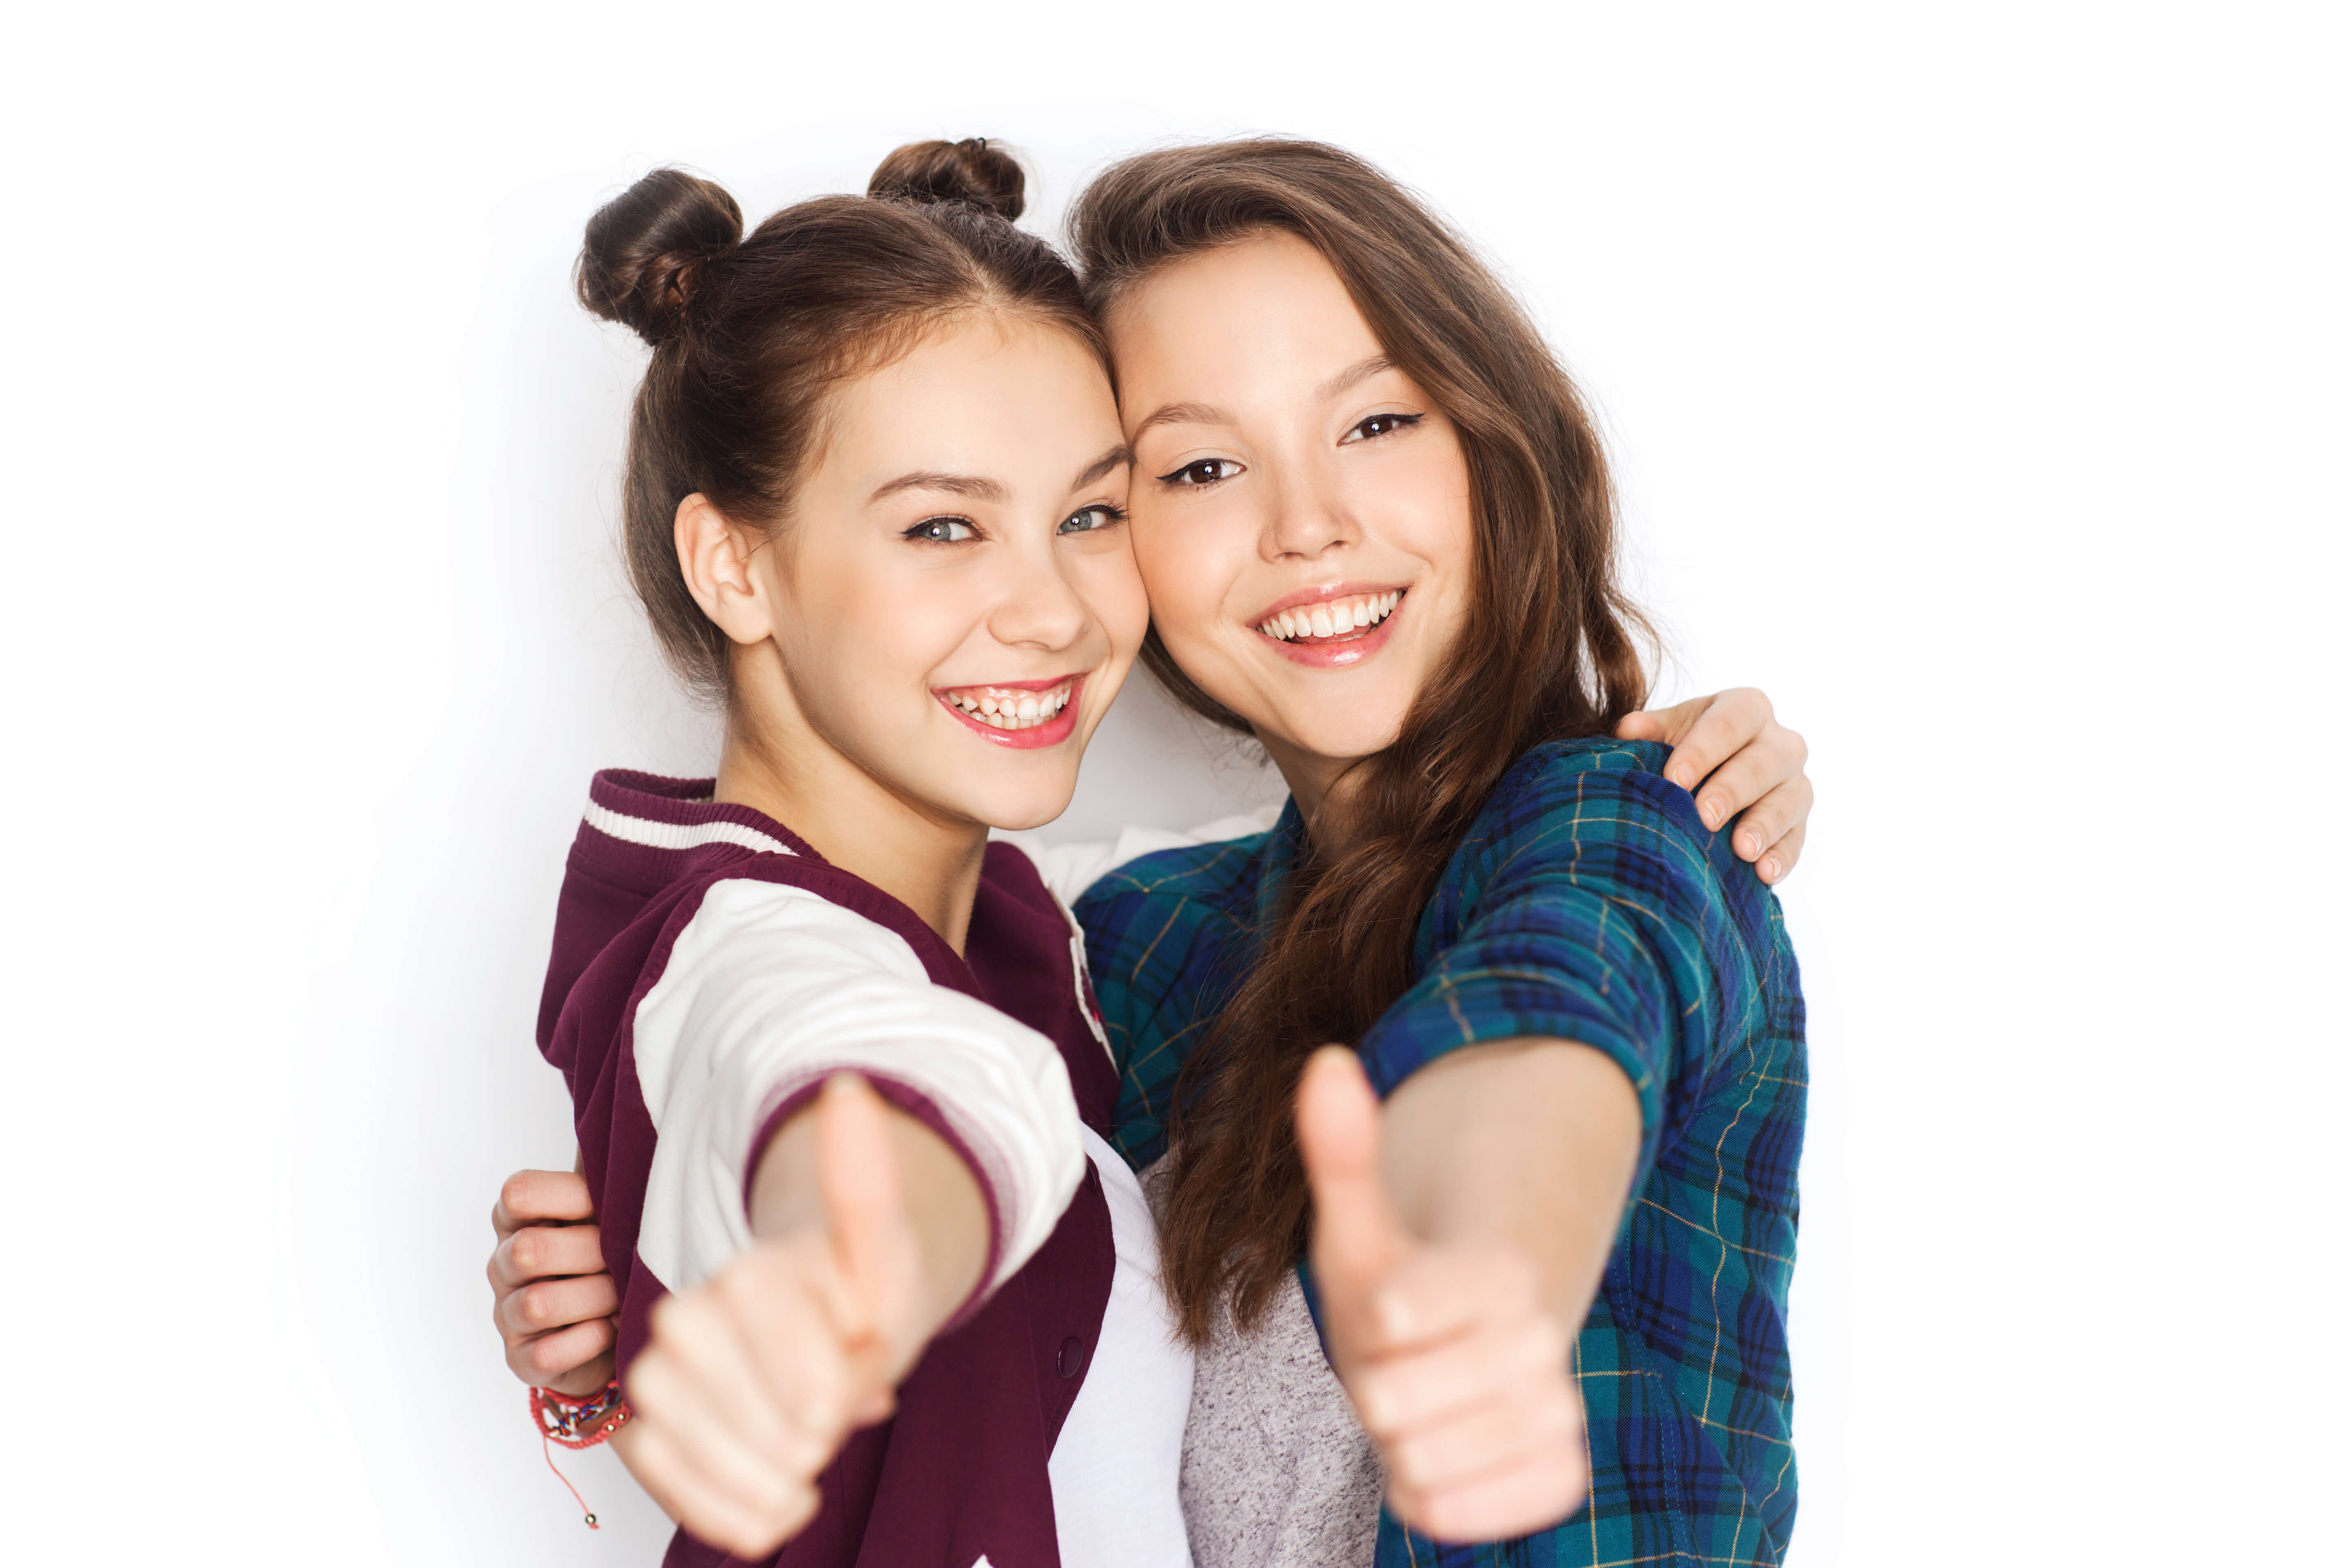 people, friends, teens and friendship concept - happy smiling pretty teenage girls hugging and showing thumbs up